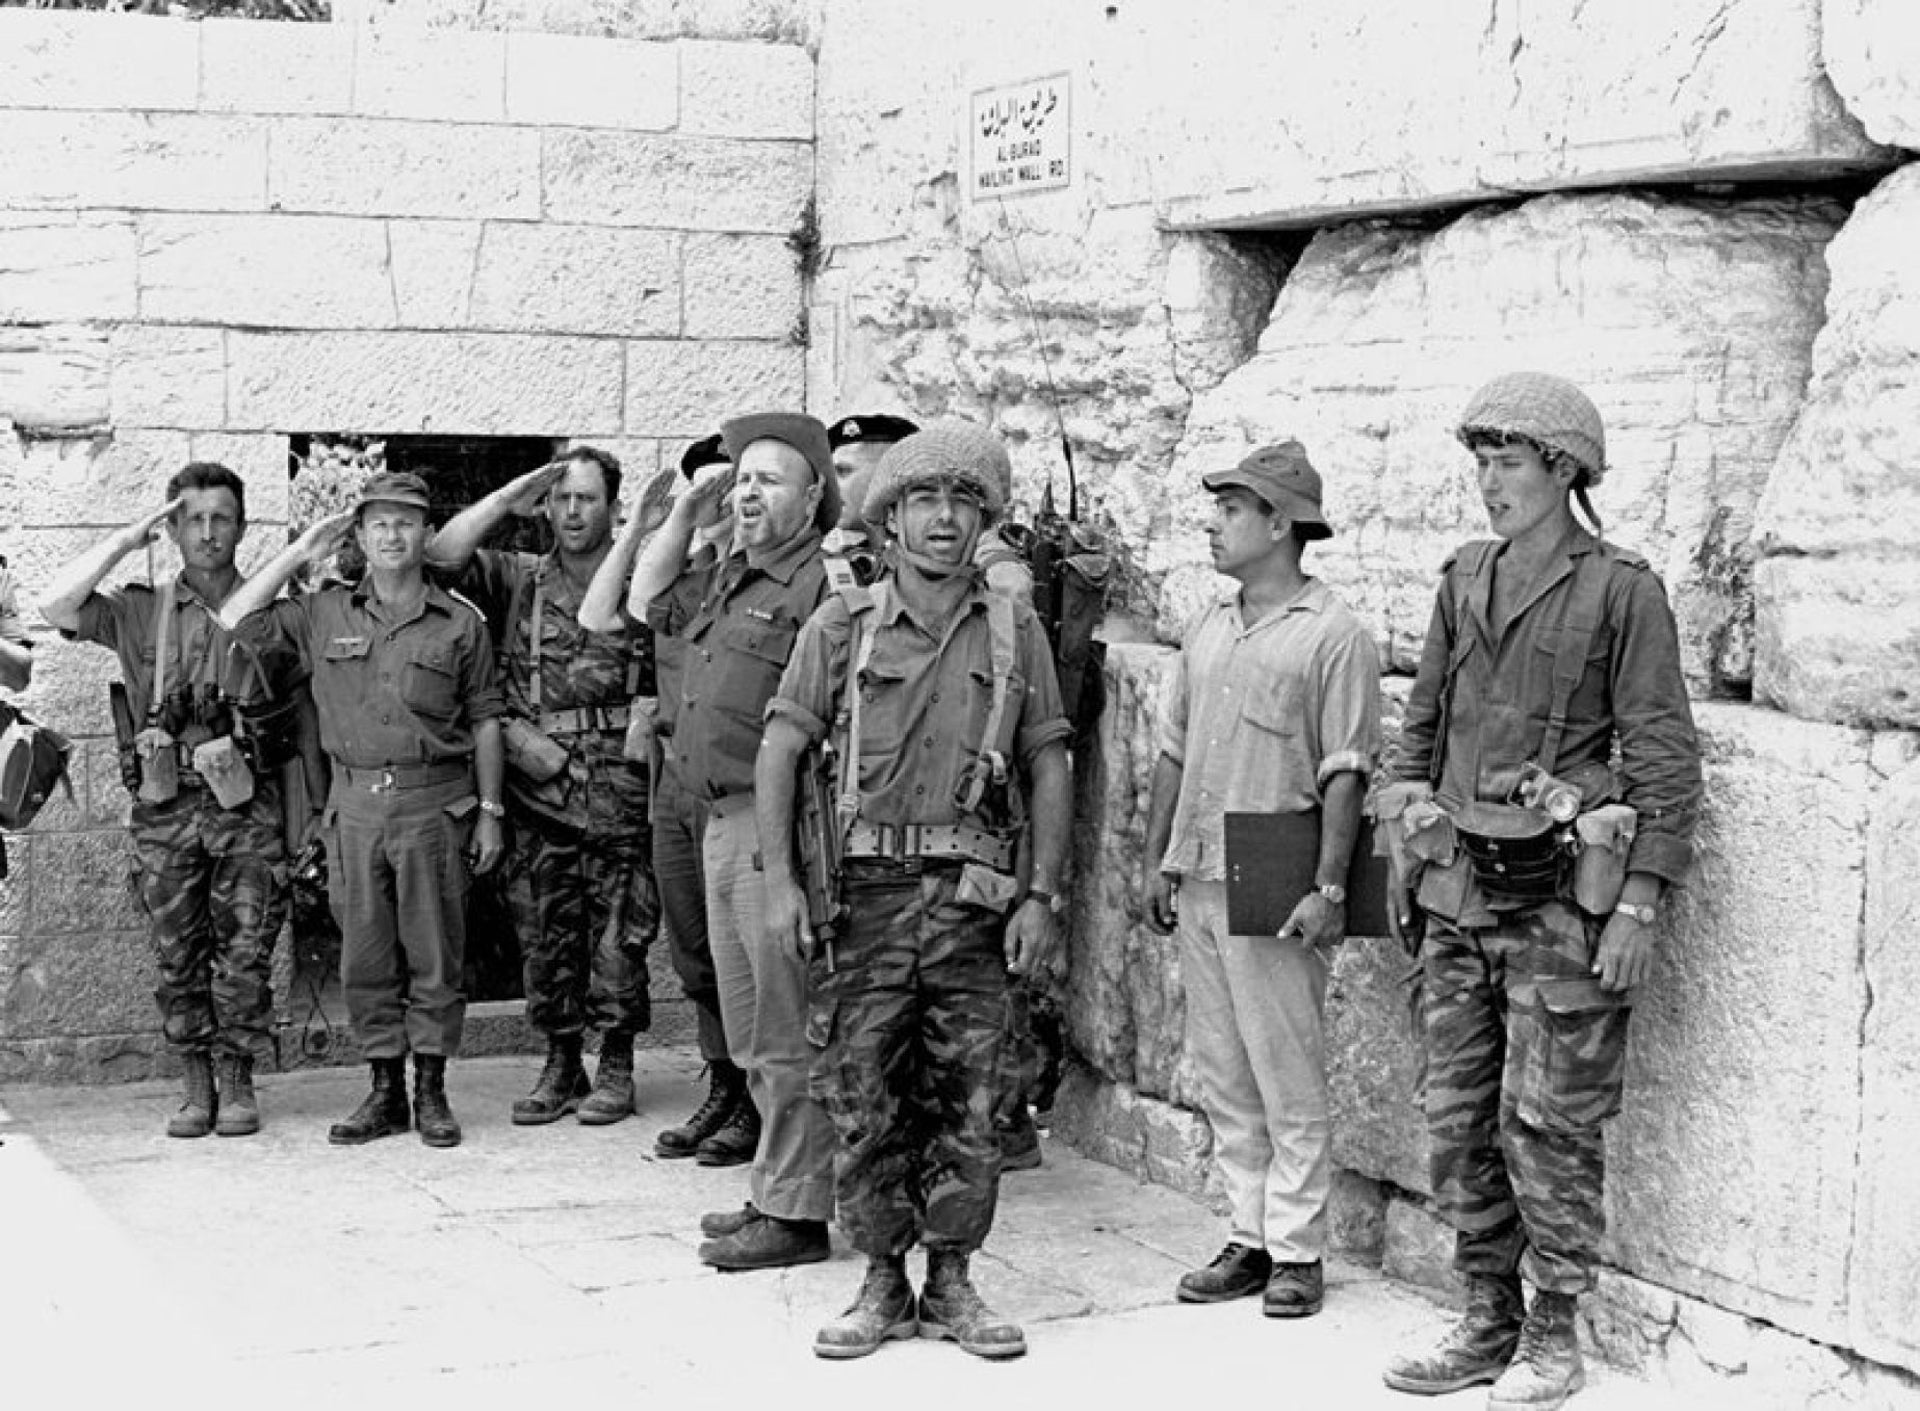 Maj. Gen. Uzi Narkiss, second from left in cap, at the Western Wall, June 7, 1967.